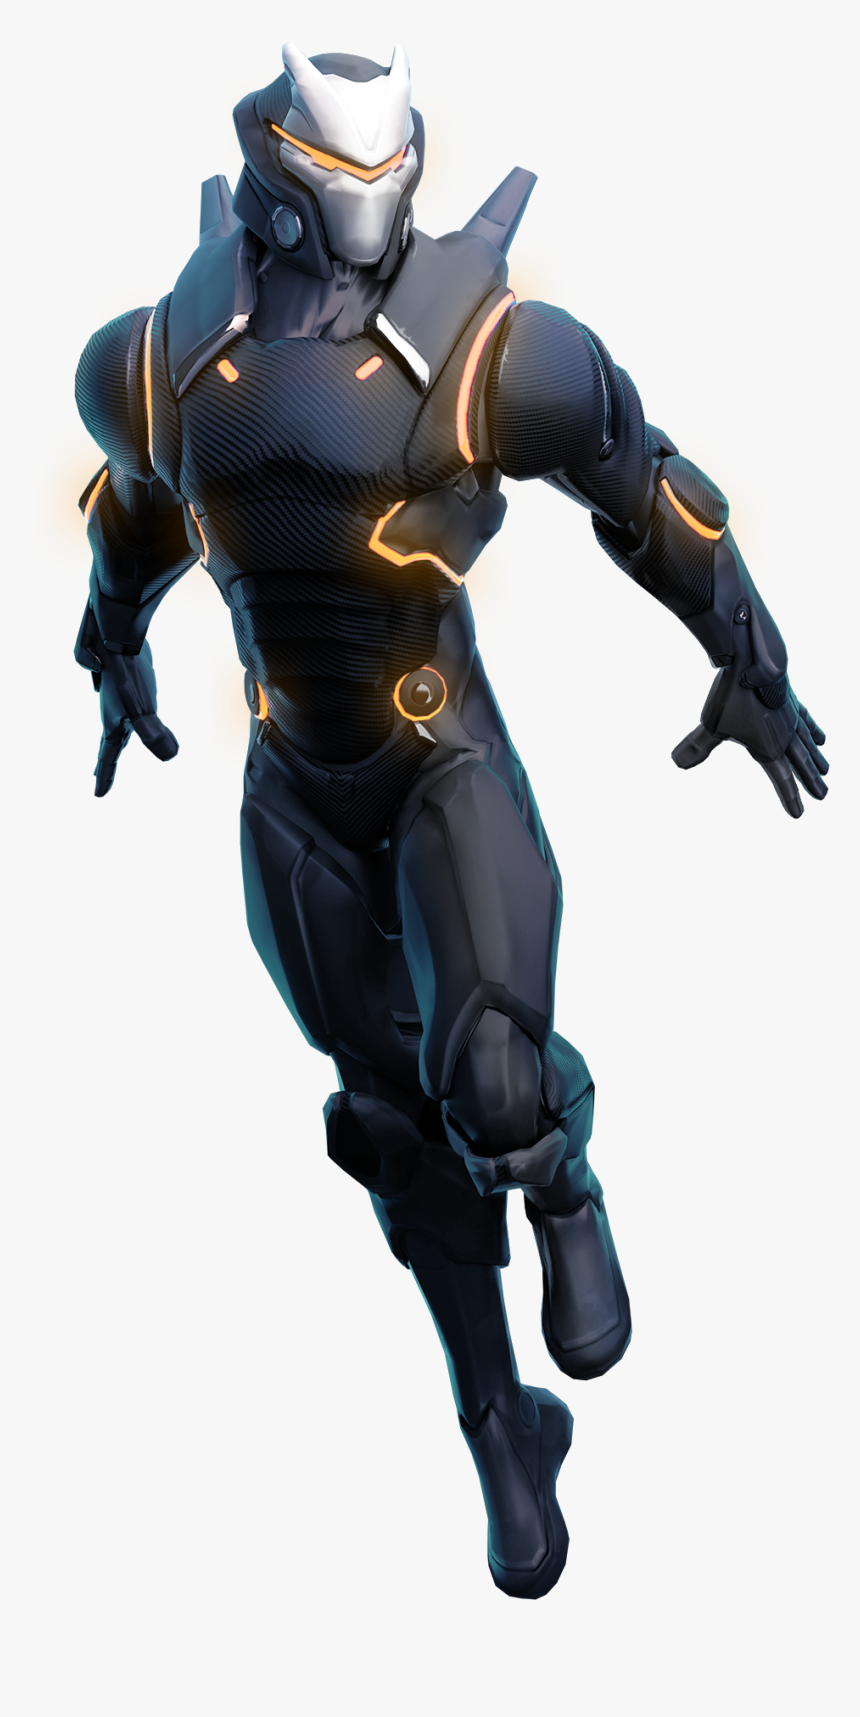 Hd Share This - Fortnite Omega Skin Png, Transparent Png, Free Download